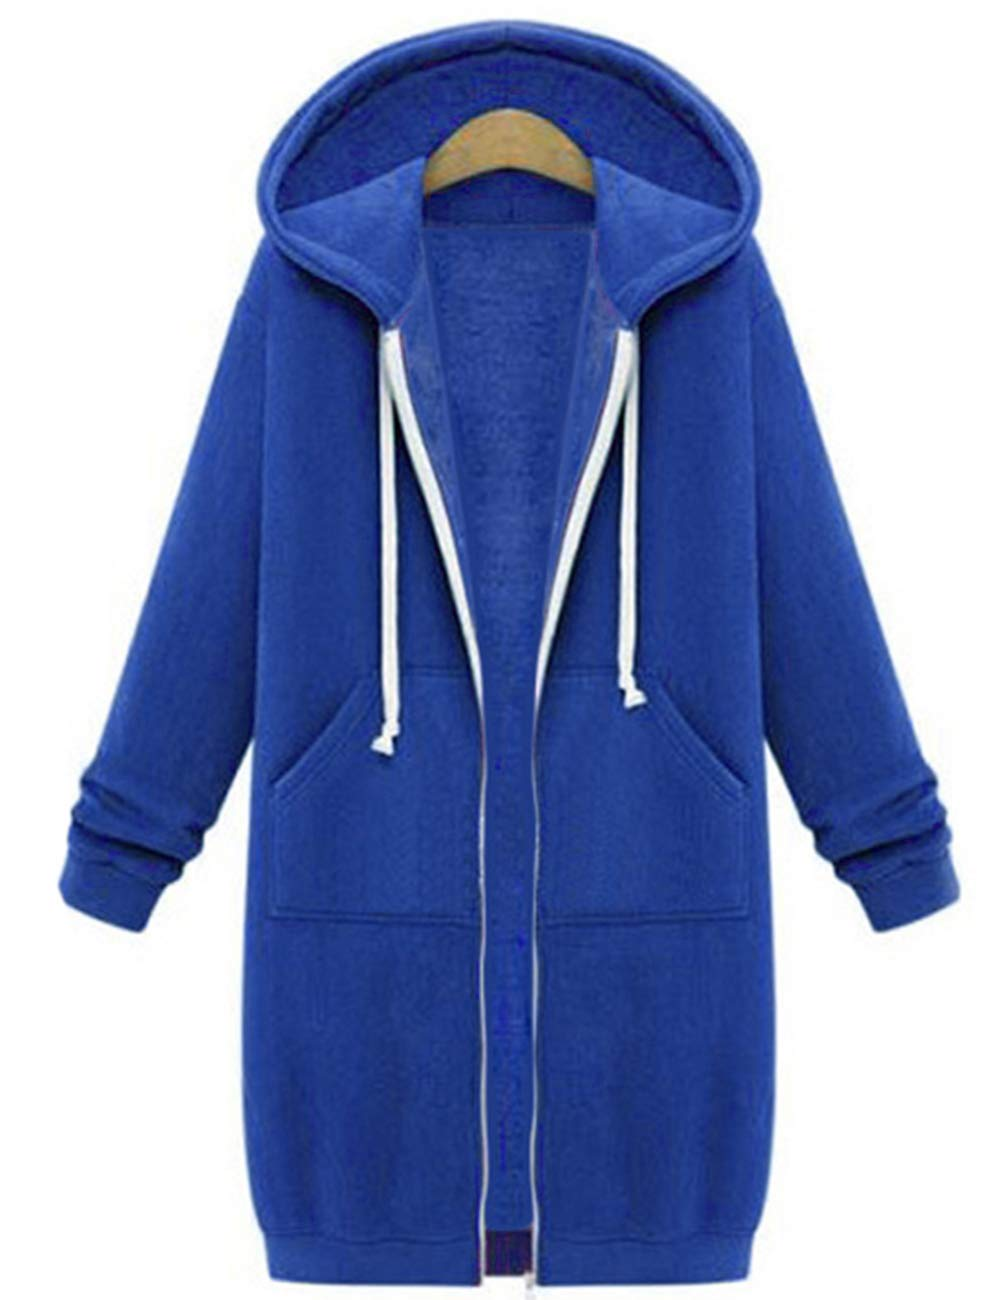 Sexyshine Women's Casual Loose Zip up Long Hoodies Sweatshirt Outerwear Jacket Tunic Coat with Pockets(BE,S)